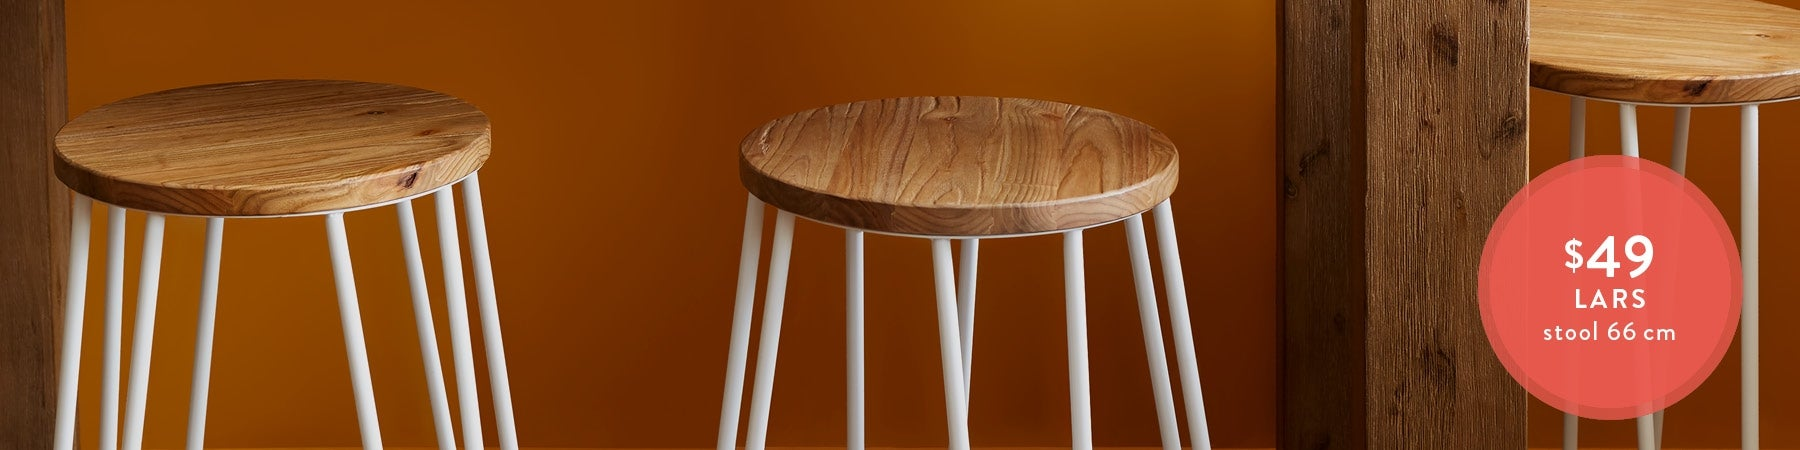 Groovy Modern Bar Stools Kitchen Dining Room Bar Structube Caraccident5 Cool Chair Designs And Ideas Caraccident5Info